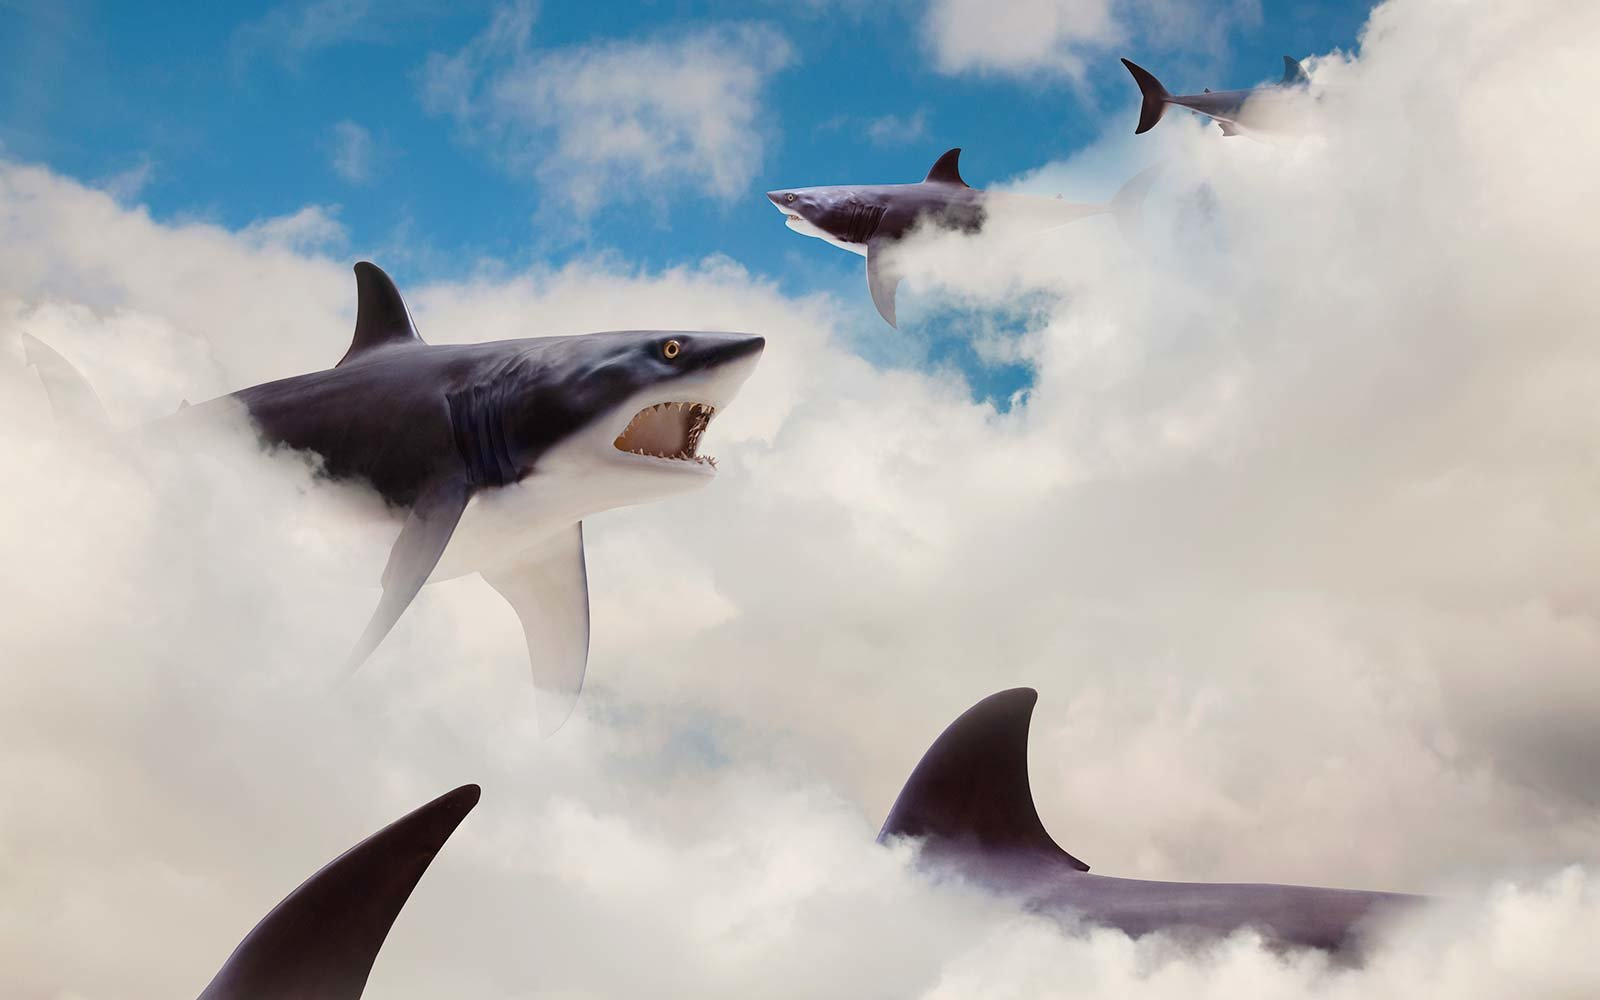 Sharks floating in clouds